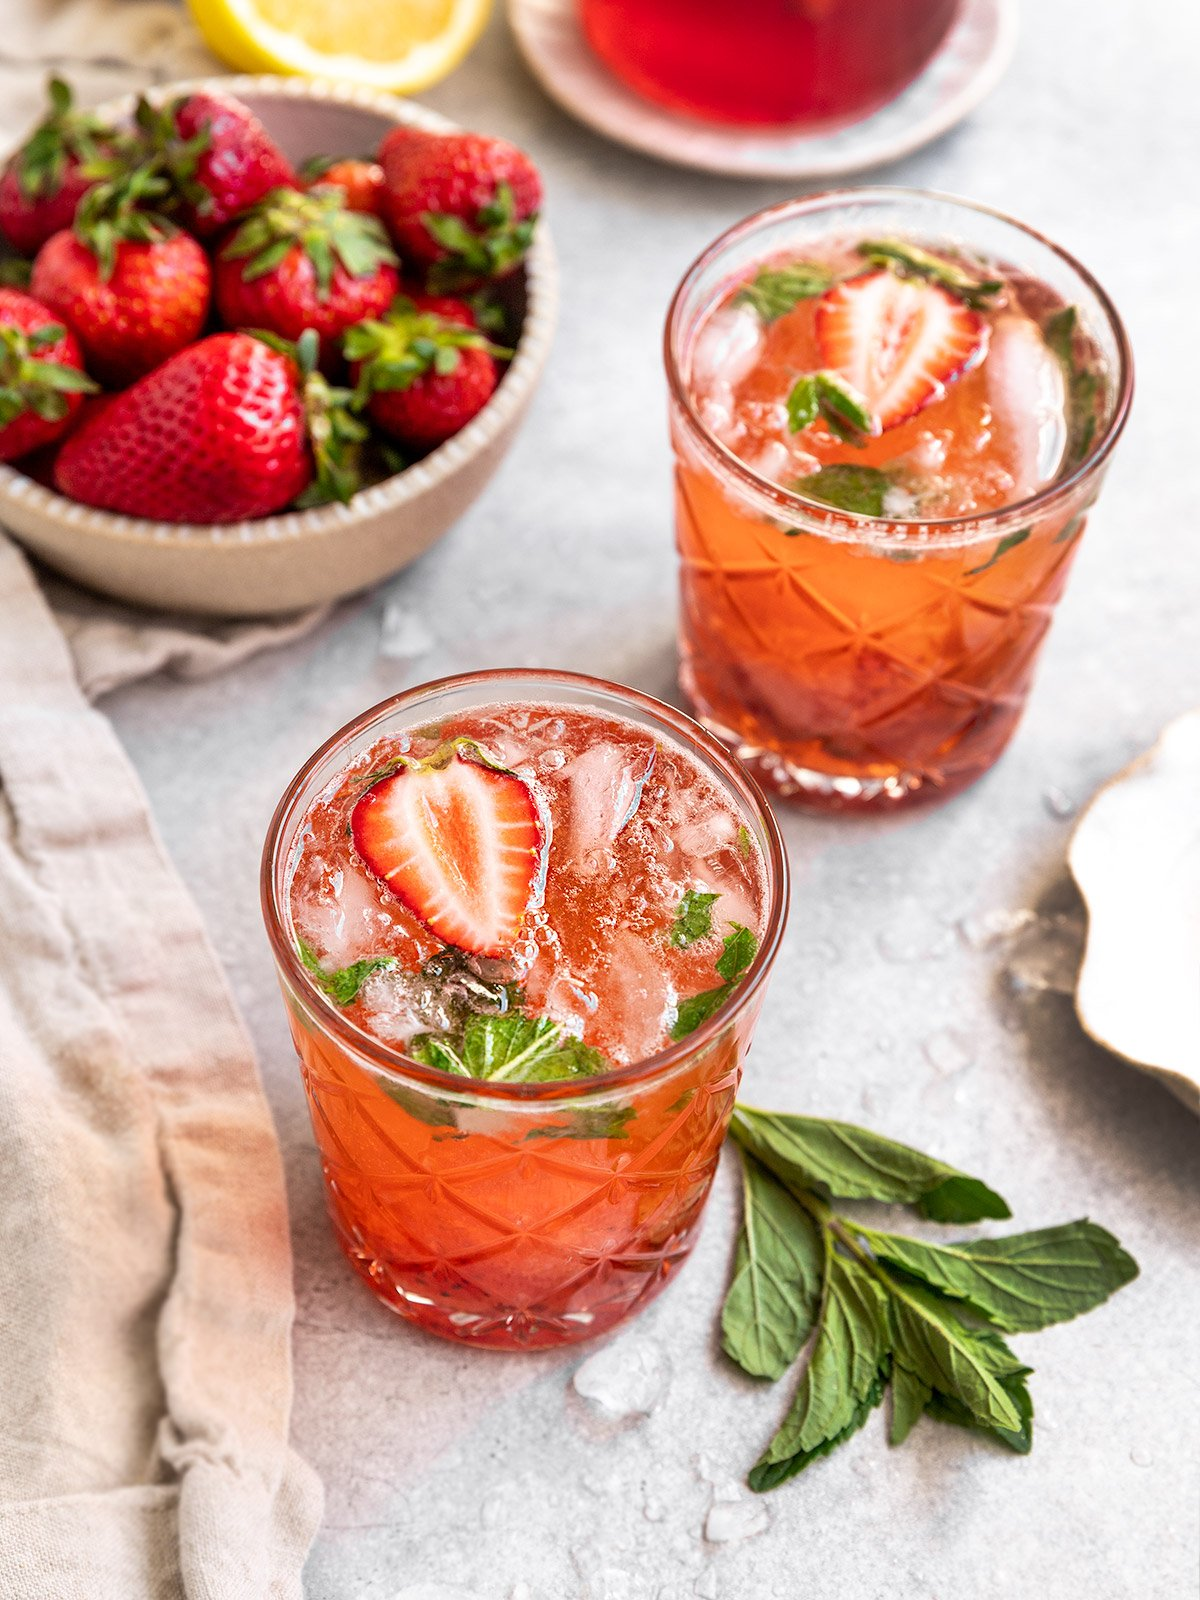 two mojitos with strawberrise and mint alongside a bowl of strawberries